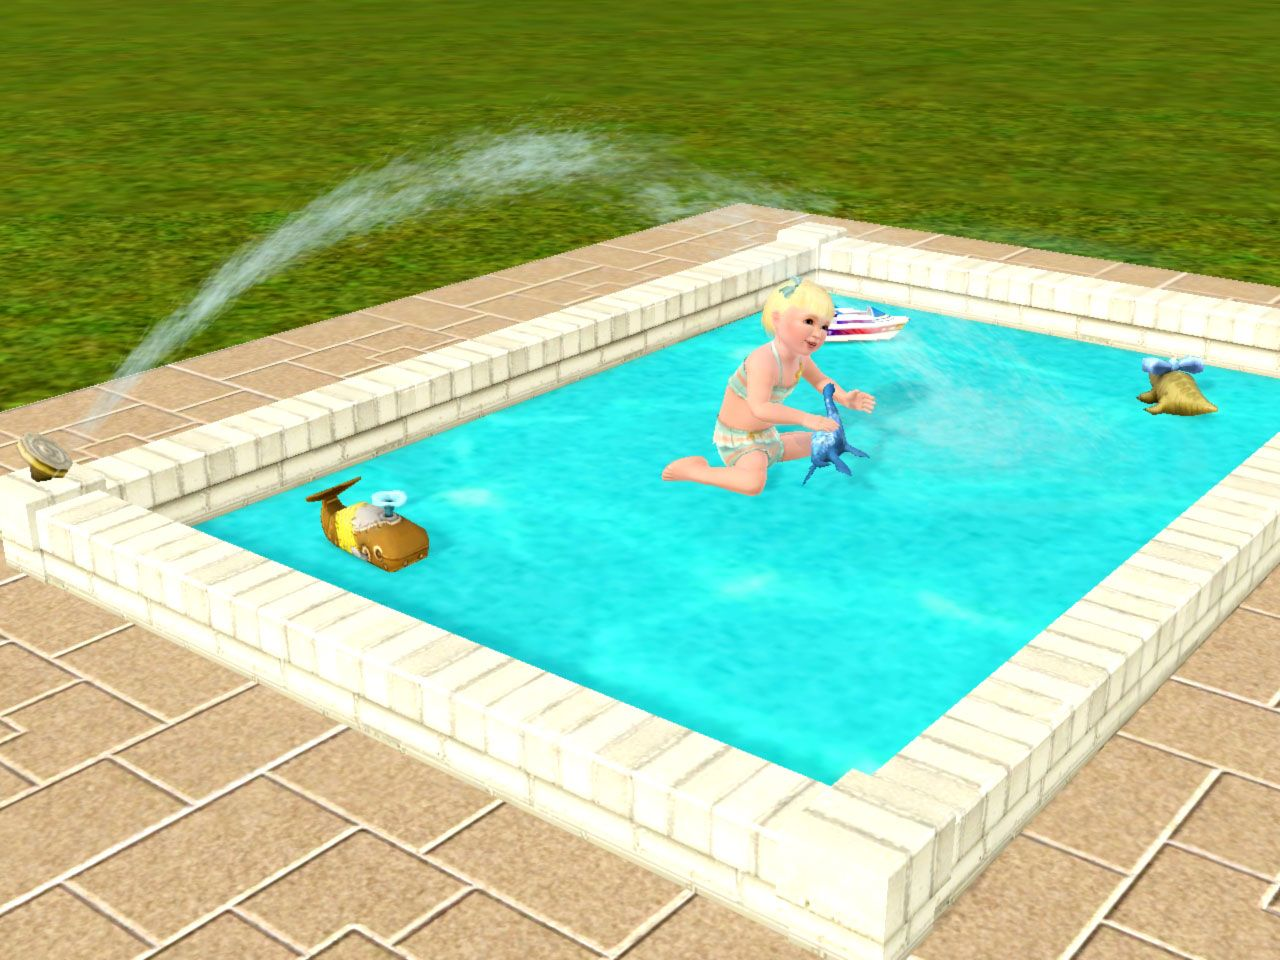 Okay here s my first entry for pools toddlers month mini tutorial building a toddler pool 1 - Define poolside ...